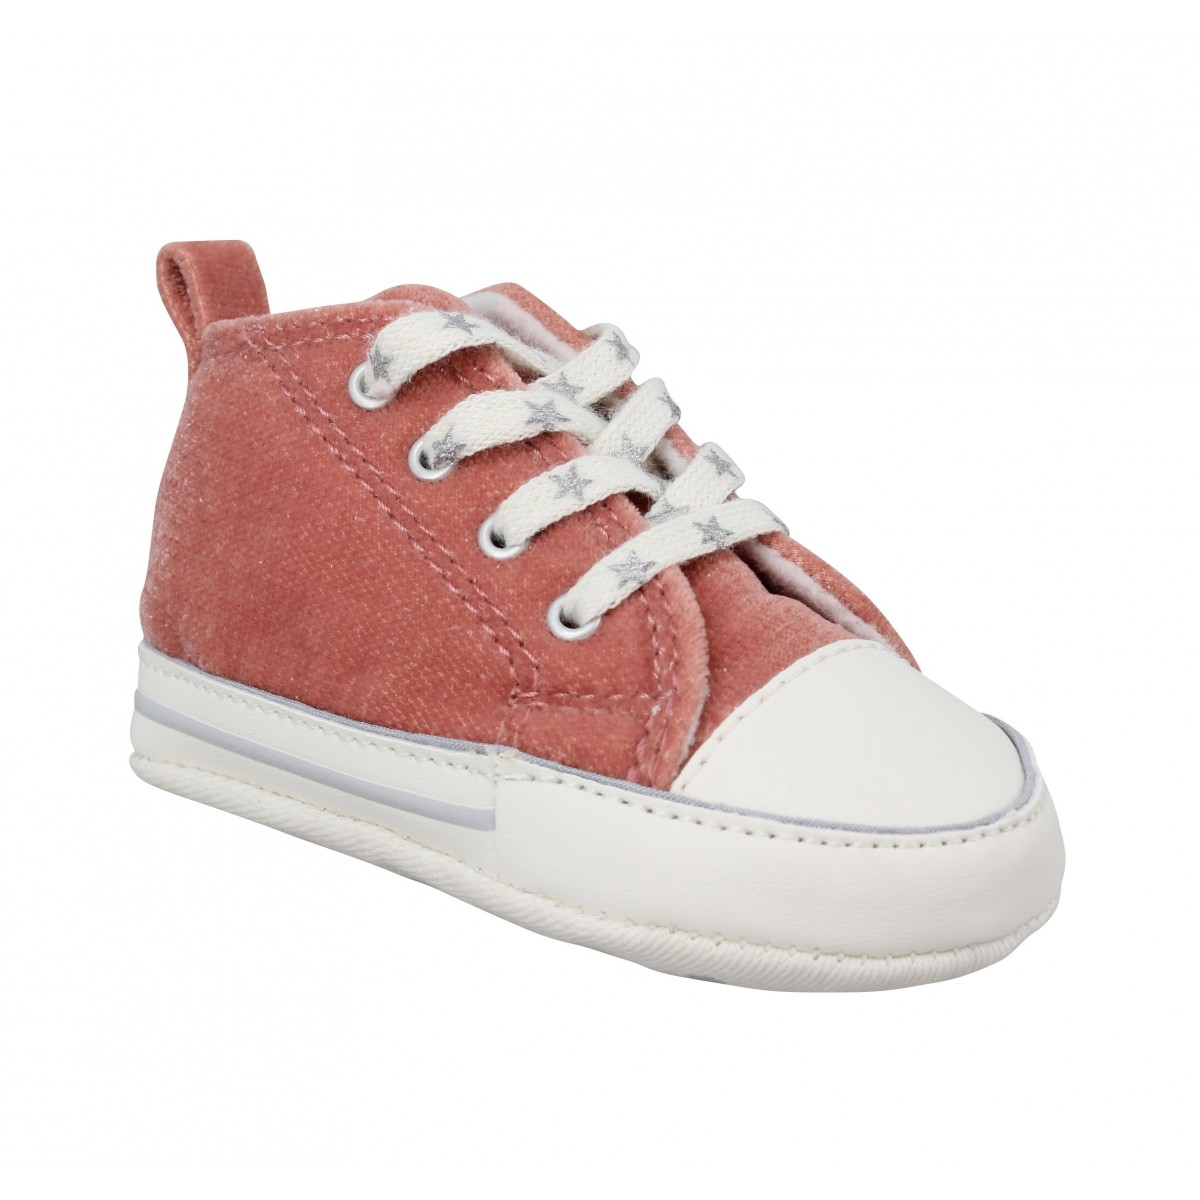 Baskets CONVERSE First Star toile Enfant Pink